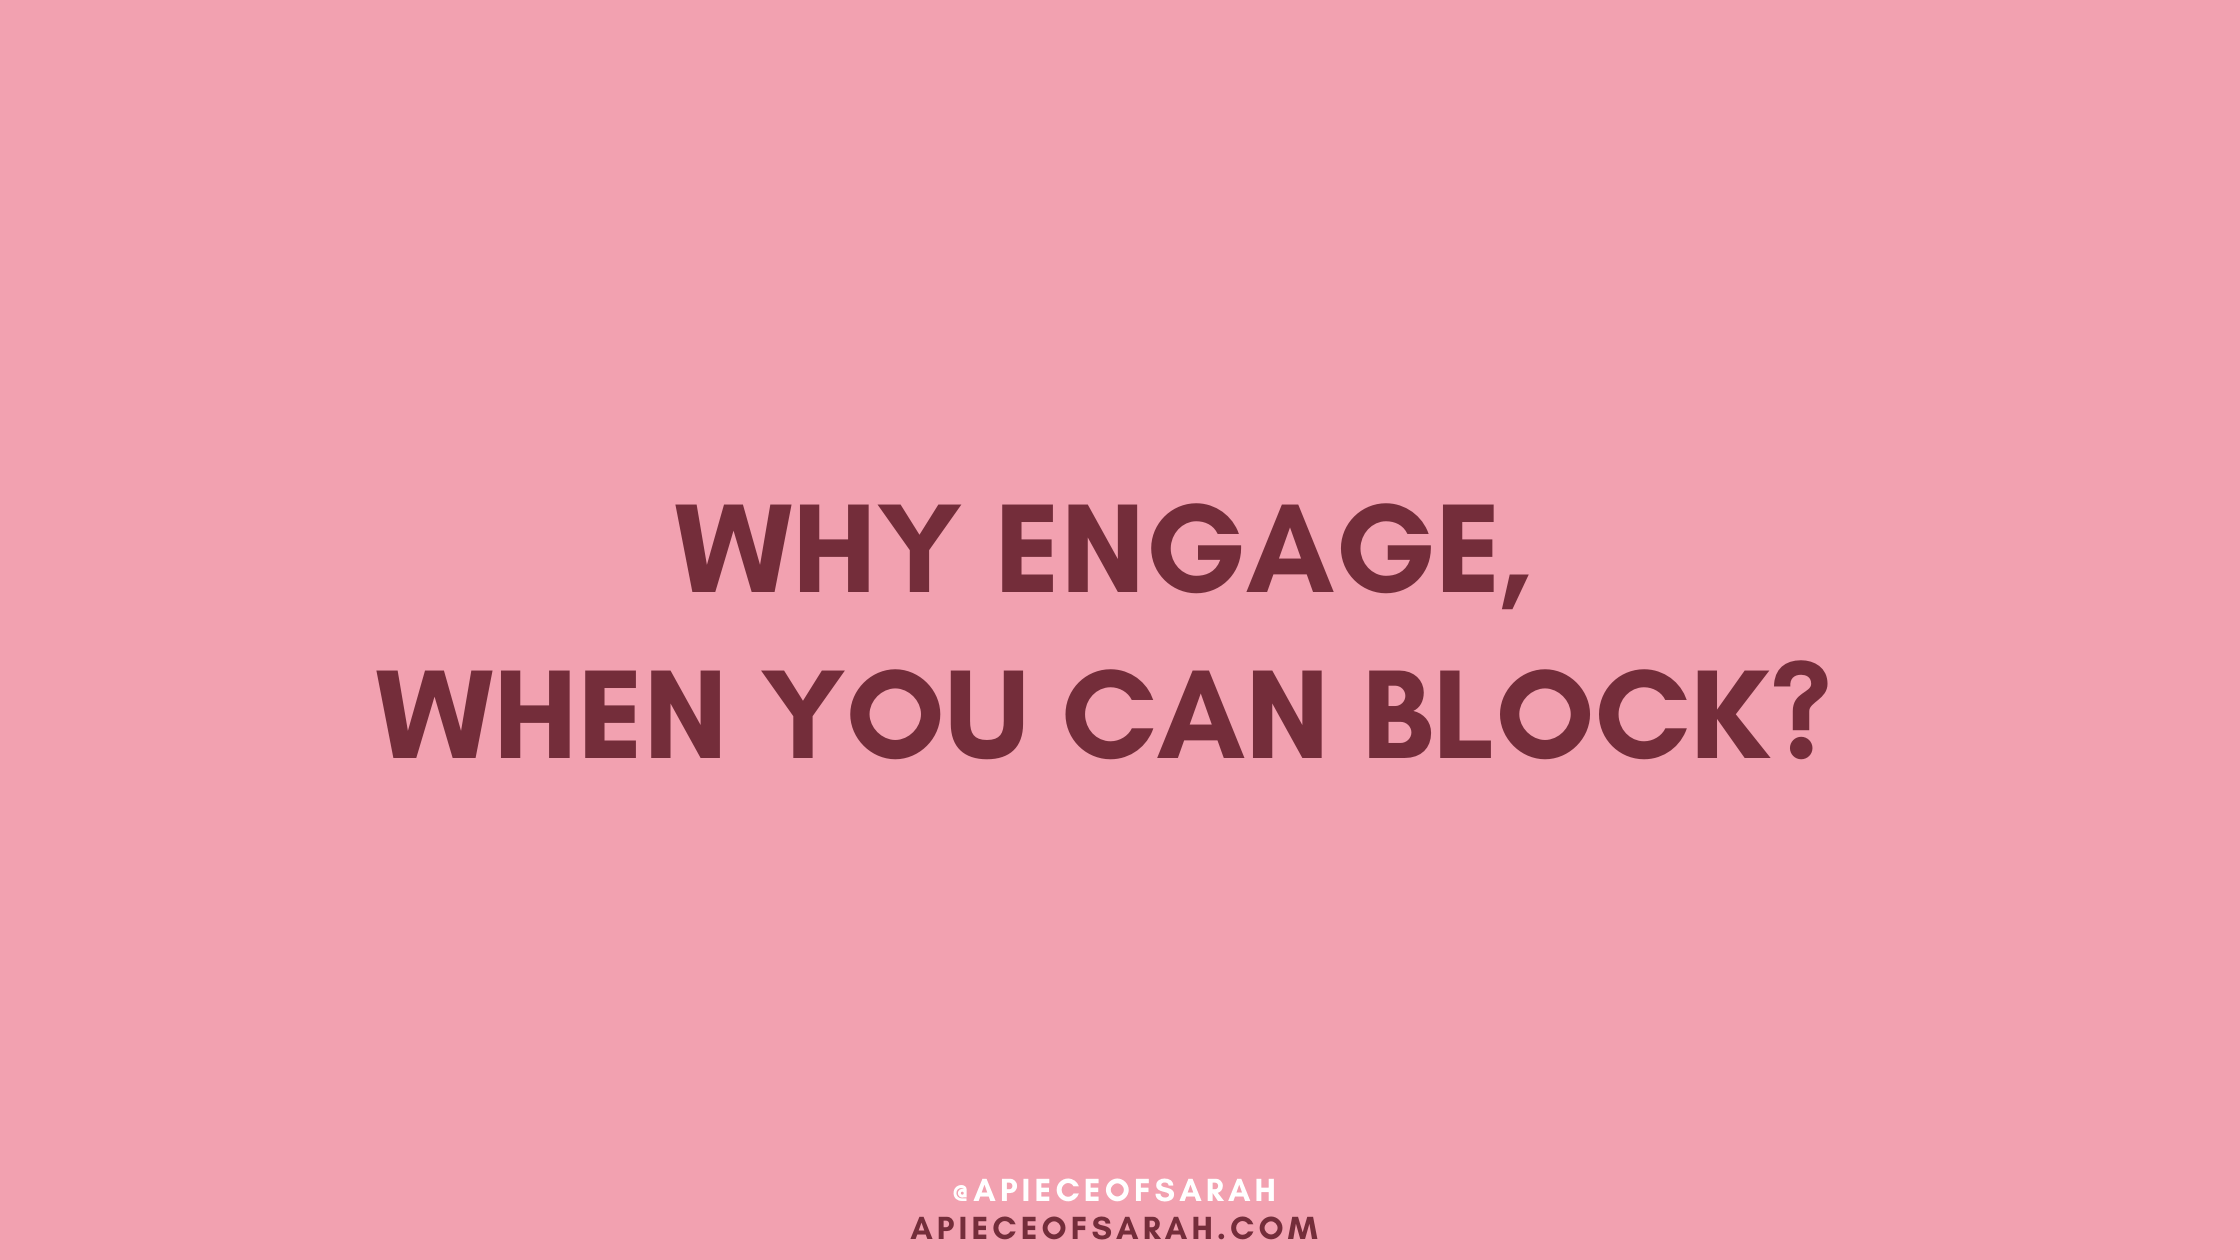 Why engage, when you can block?